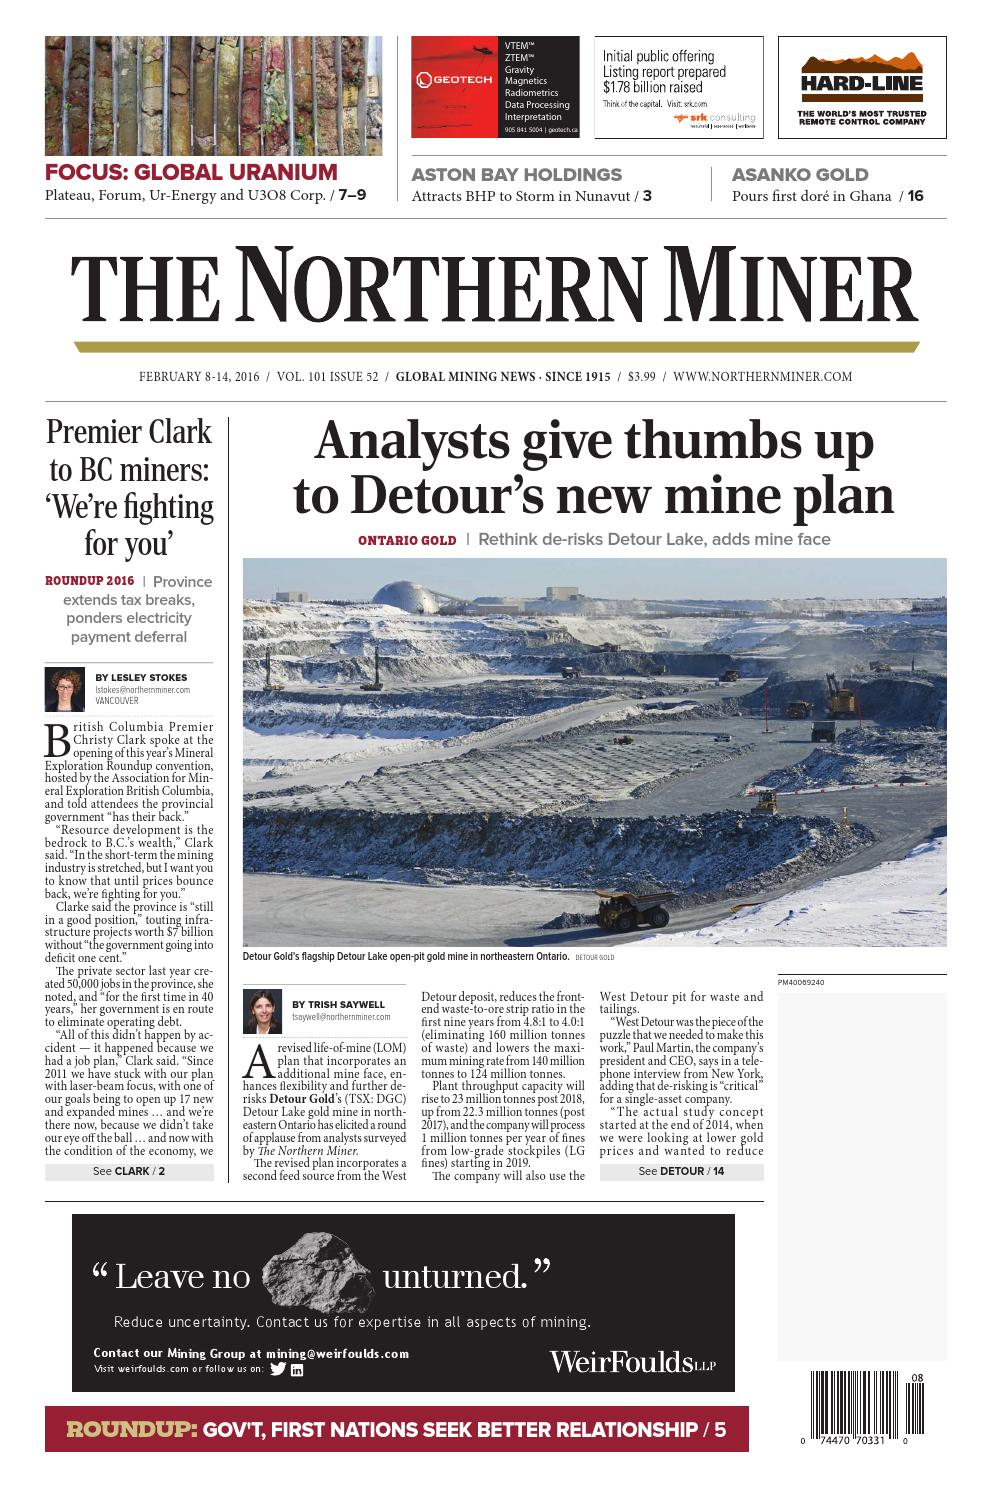 The Northern Miner February 8-February 14, 2016 Issue by The